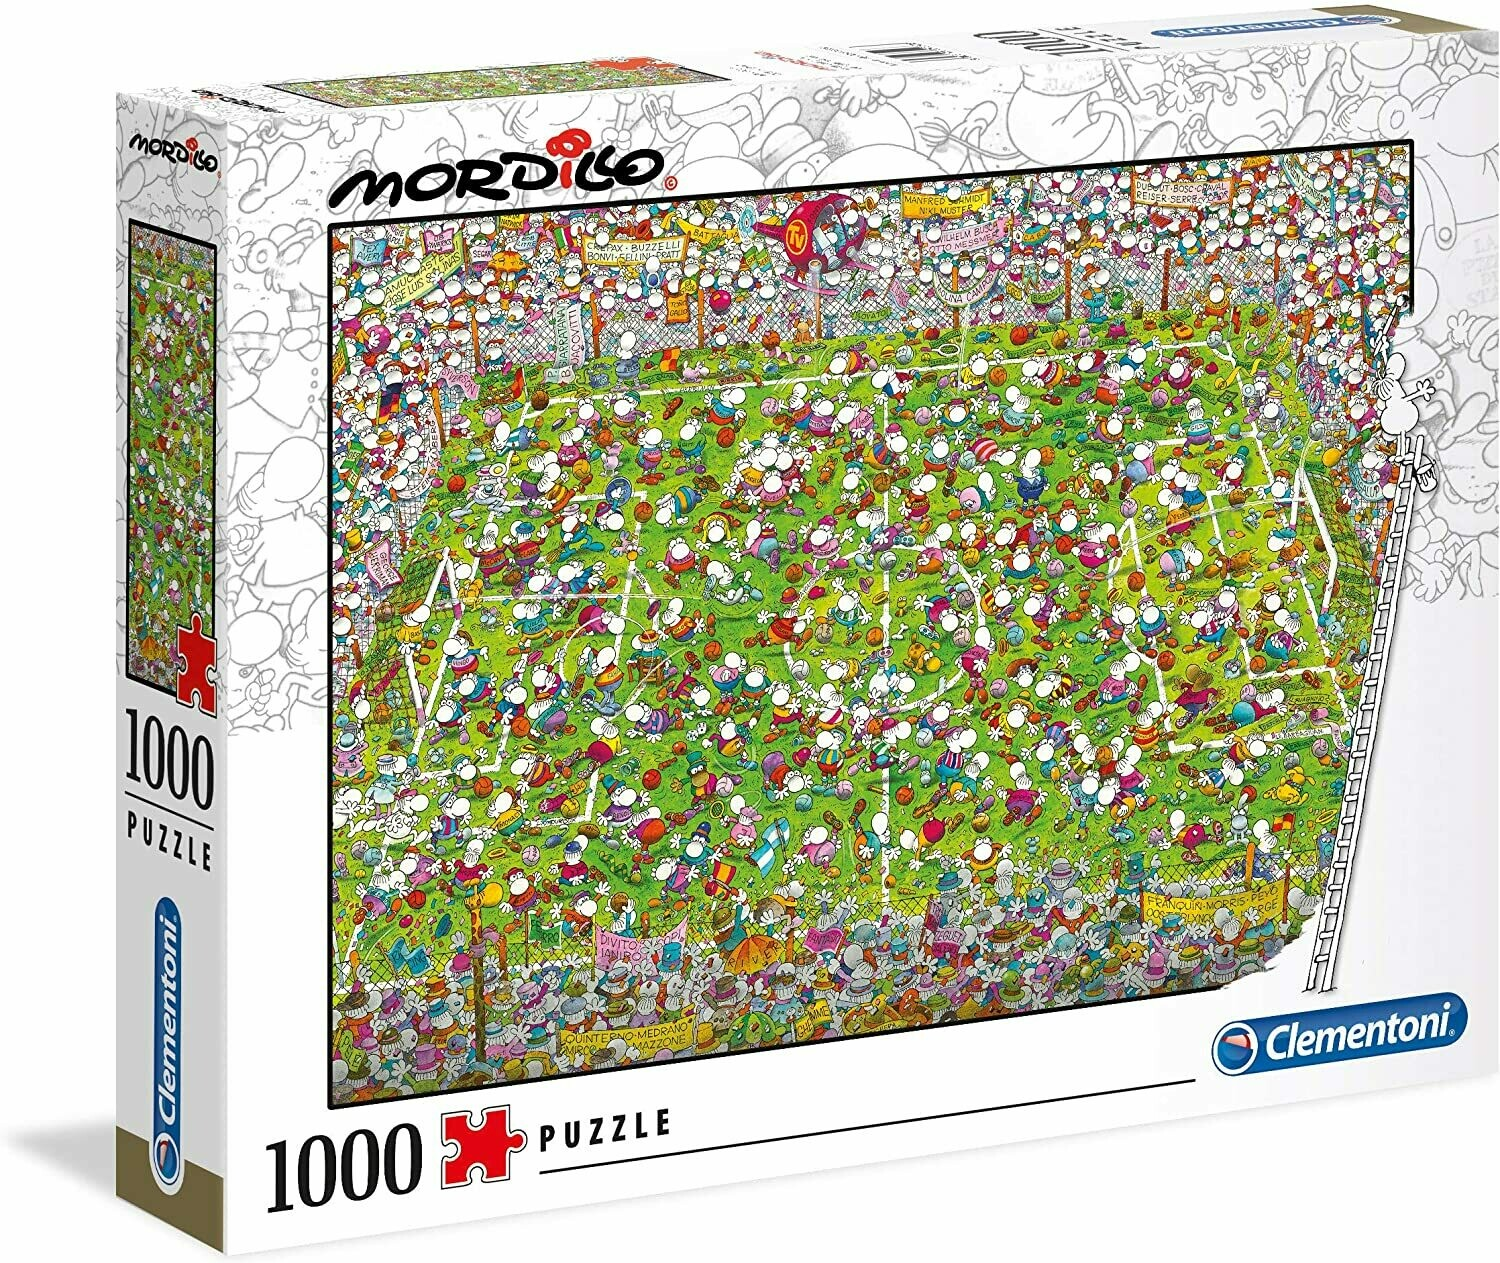 PUZZLE 1000 Mordillo - The Match - CLEMENTONI